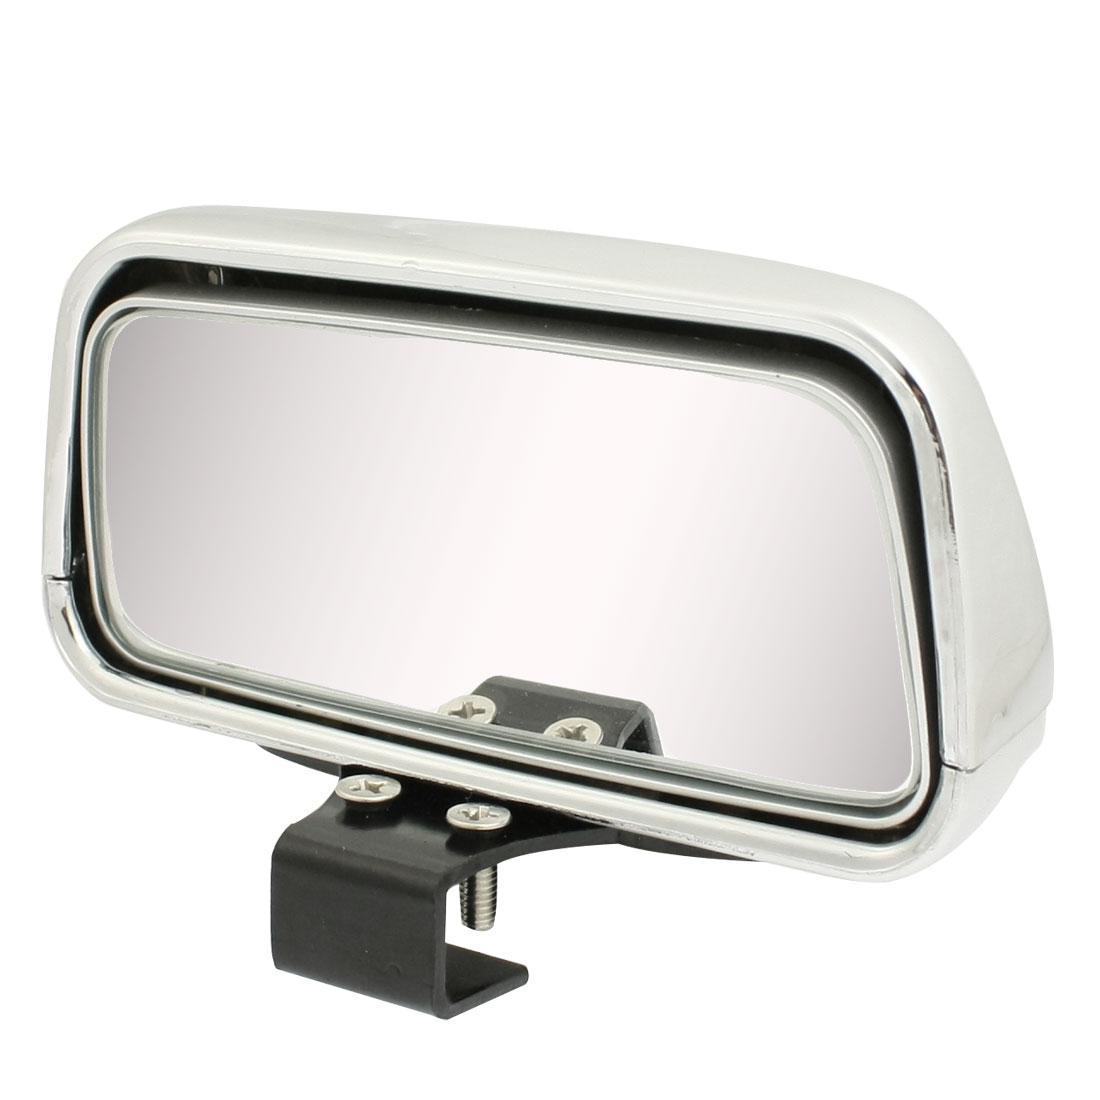 Side Rear View Blind Spot Auxiliary Mirror Silver Tone for Vehicle Car